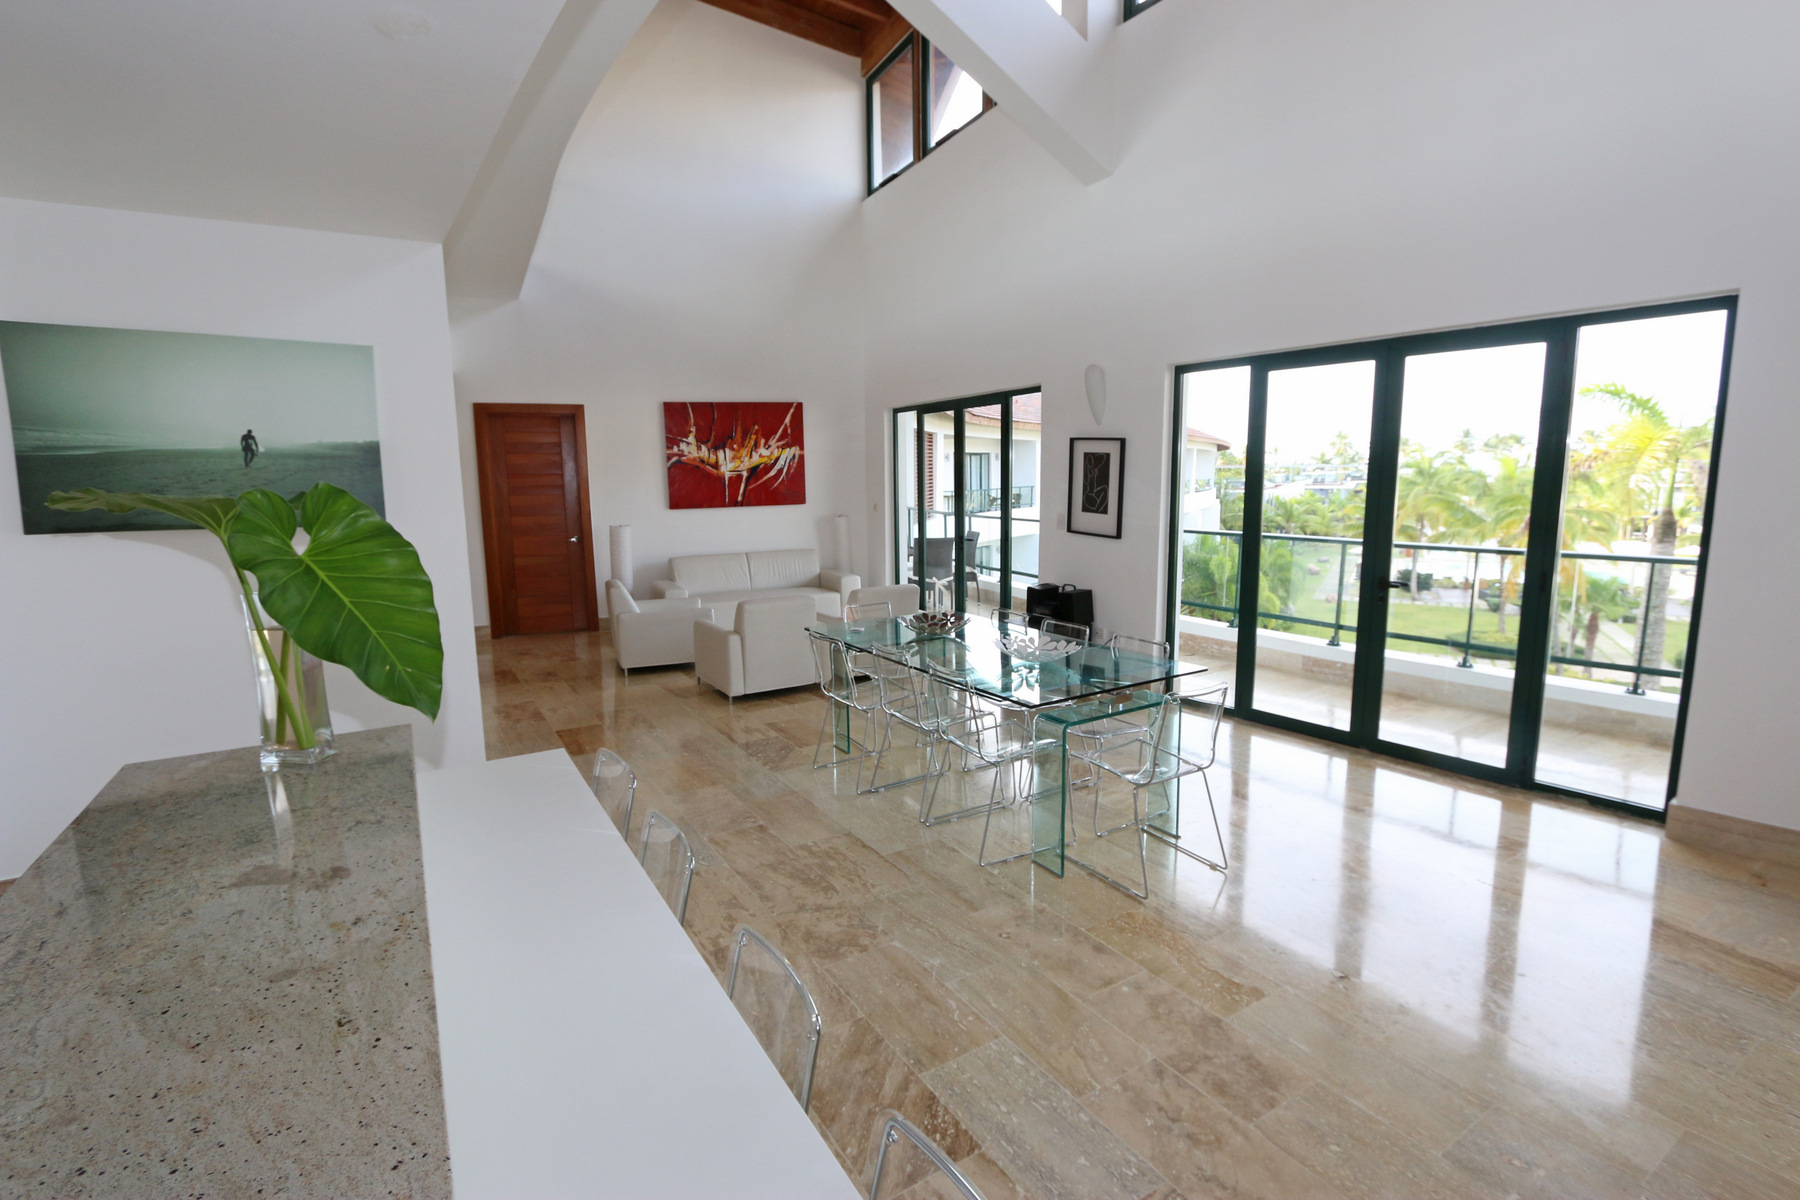 Condominium for Sale at Sublime Samana 2137 Sublime Samana - 2317, Las Terrenas, Samana, 32000 Dominican Republic